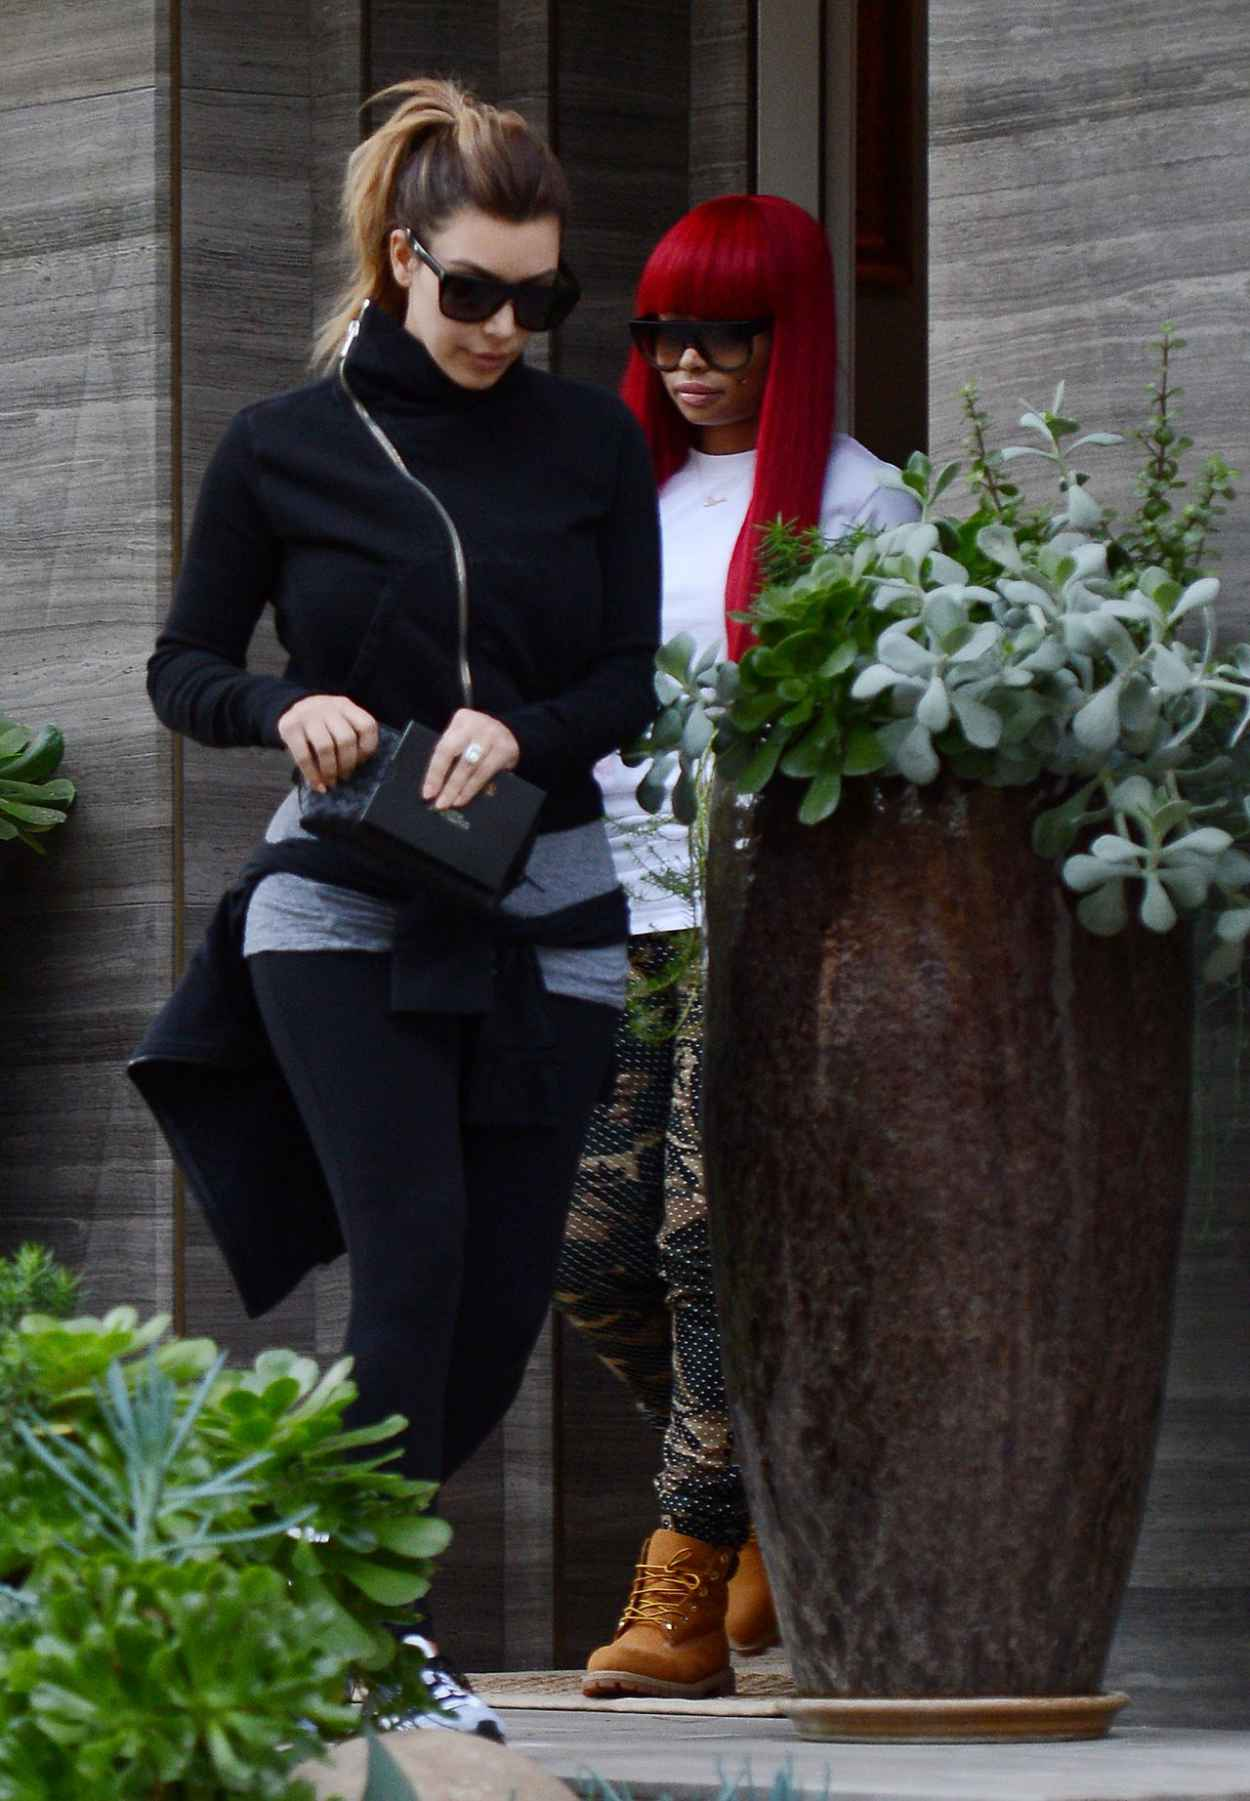 Kim Kardashian Street Style - Visits a Friend in Beverly Hills - December 2015-1